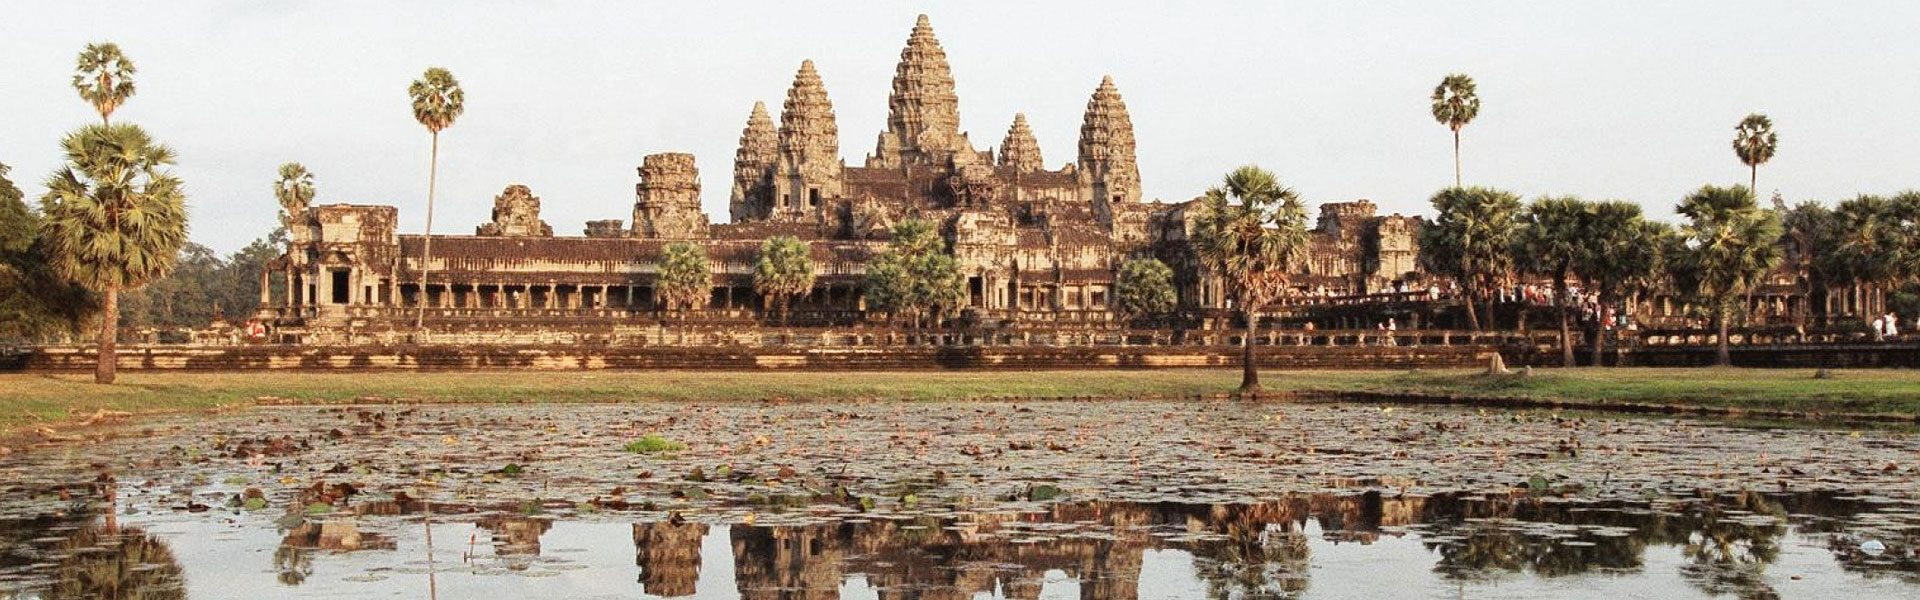 Cambodia Travel | Cambodia Travel Tips | Travel Cambodia | Things to do in Cambodia | Cambodia Travel Guide